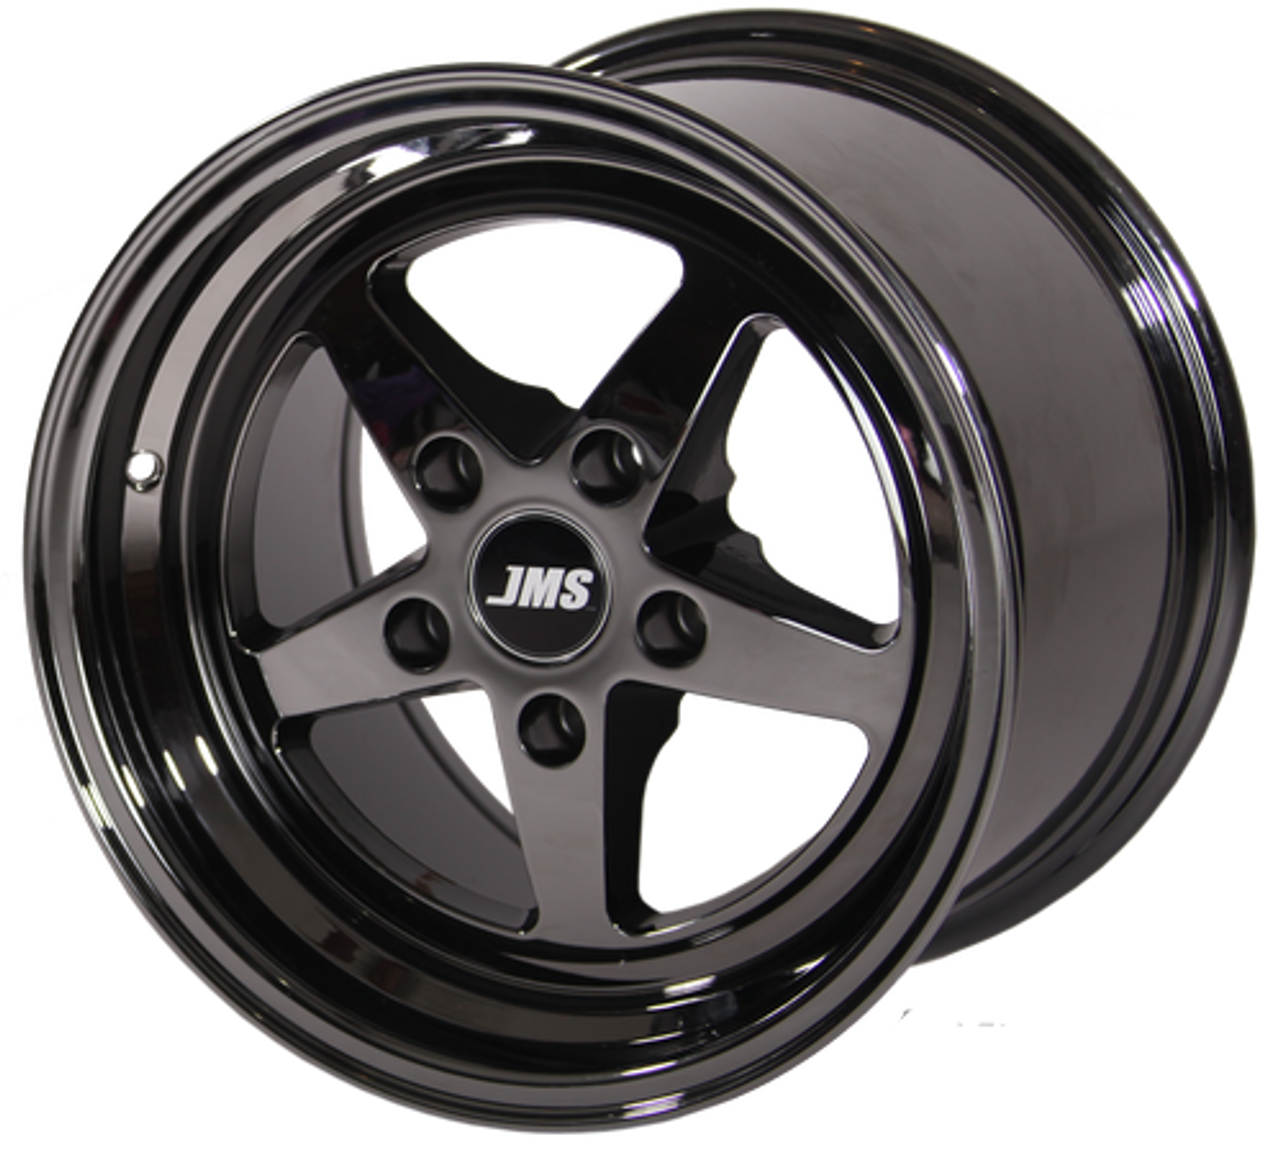 39a0ae30bd JMS Products - Avenger Wheels - Page 1 - JMS